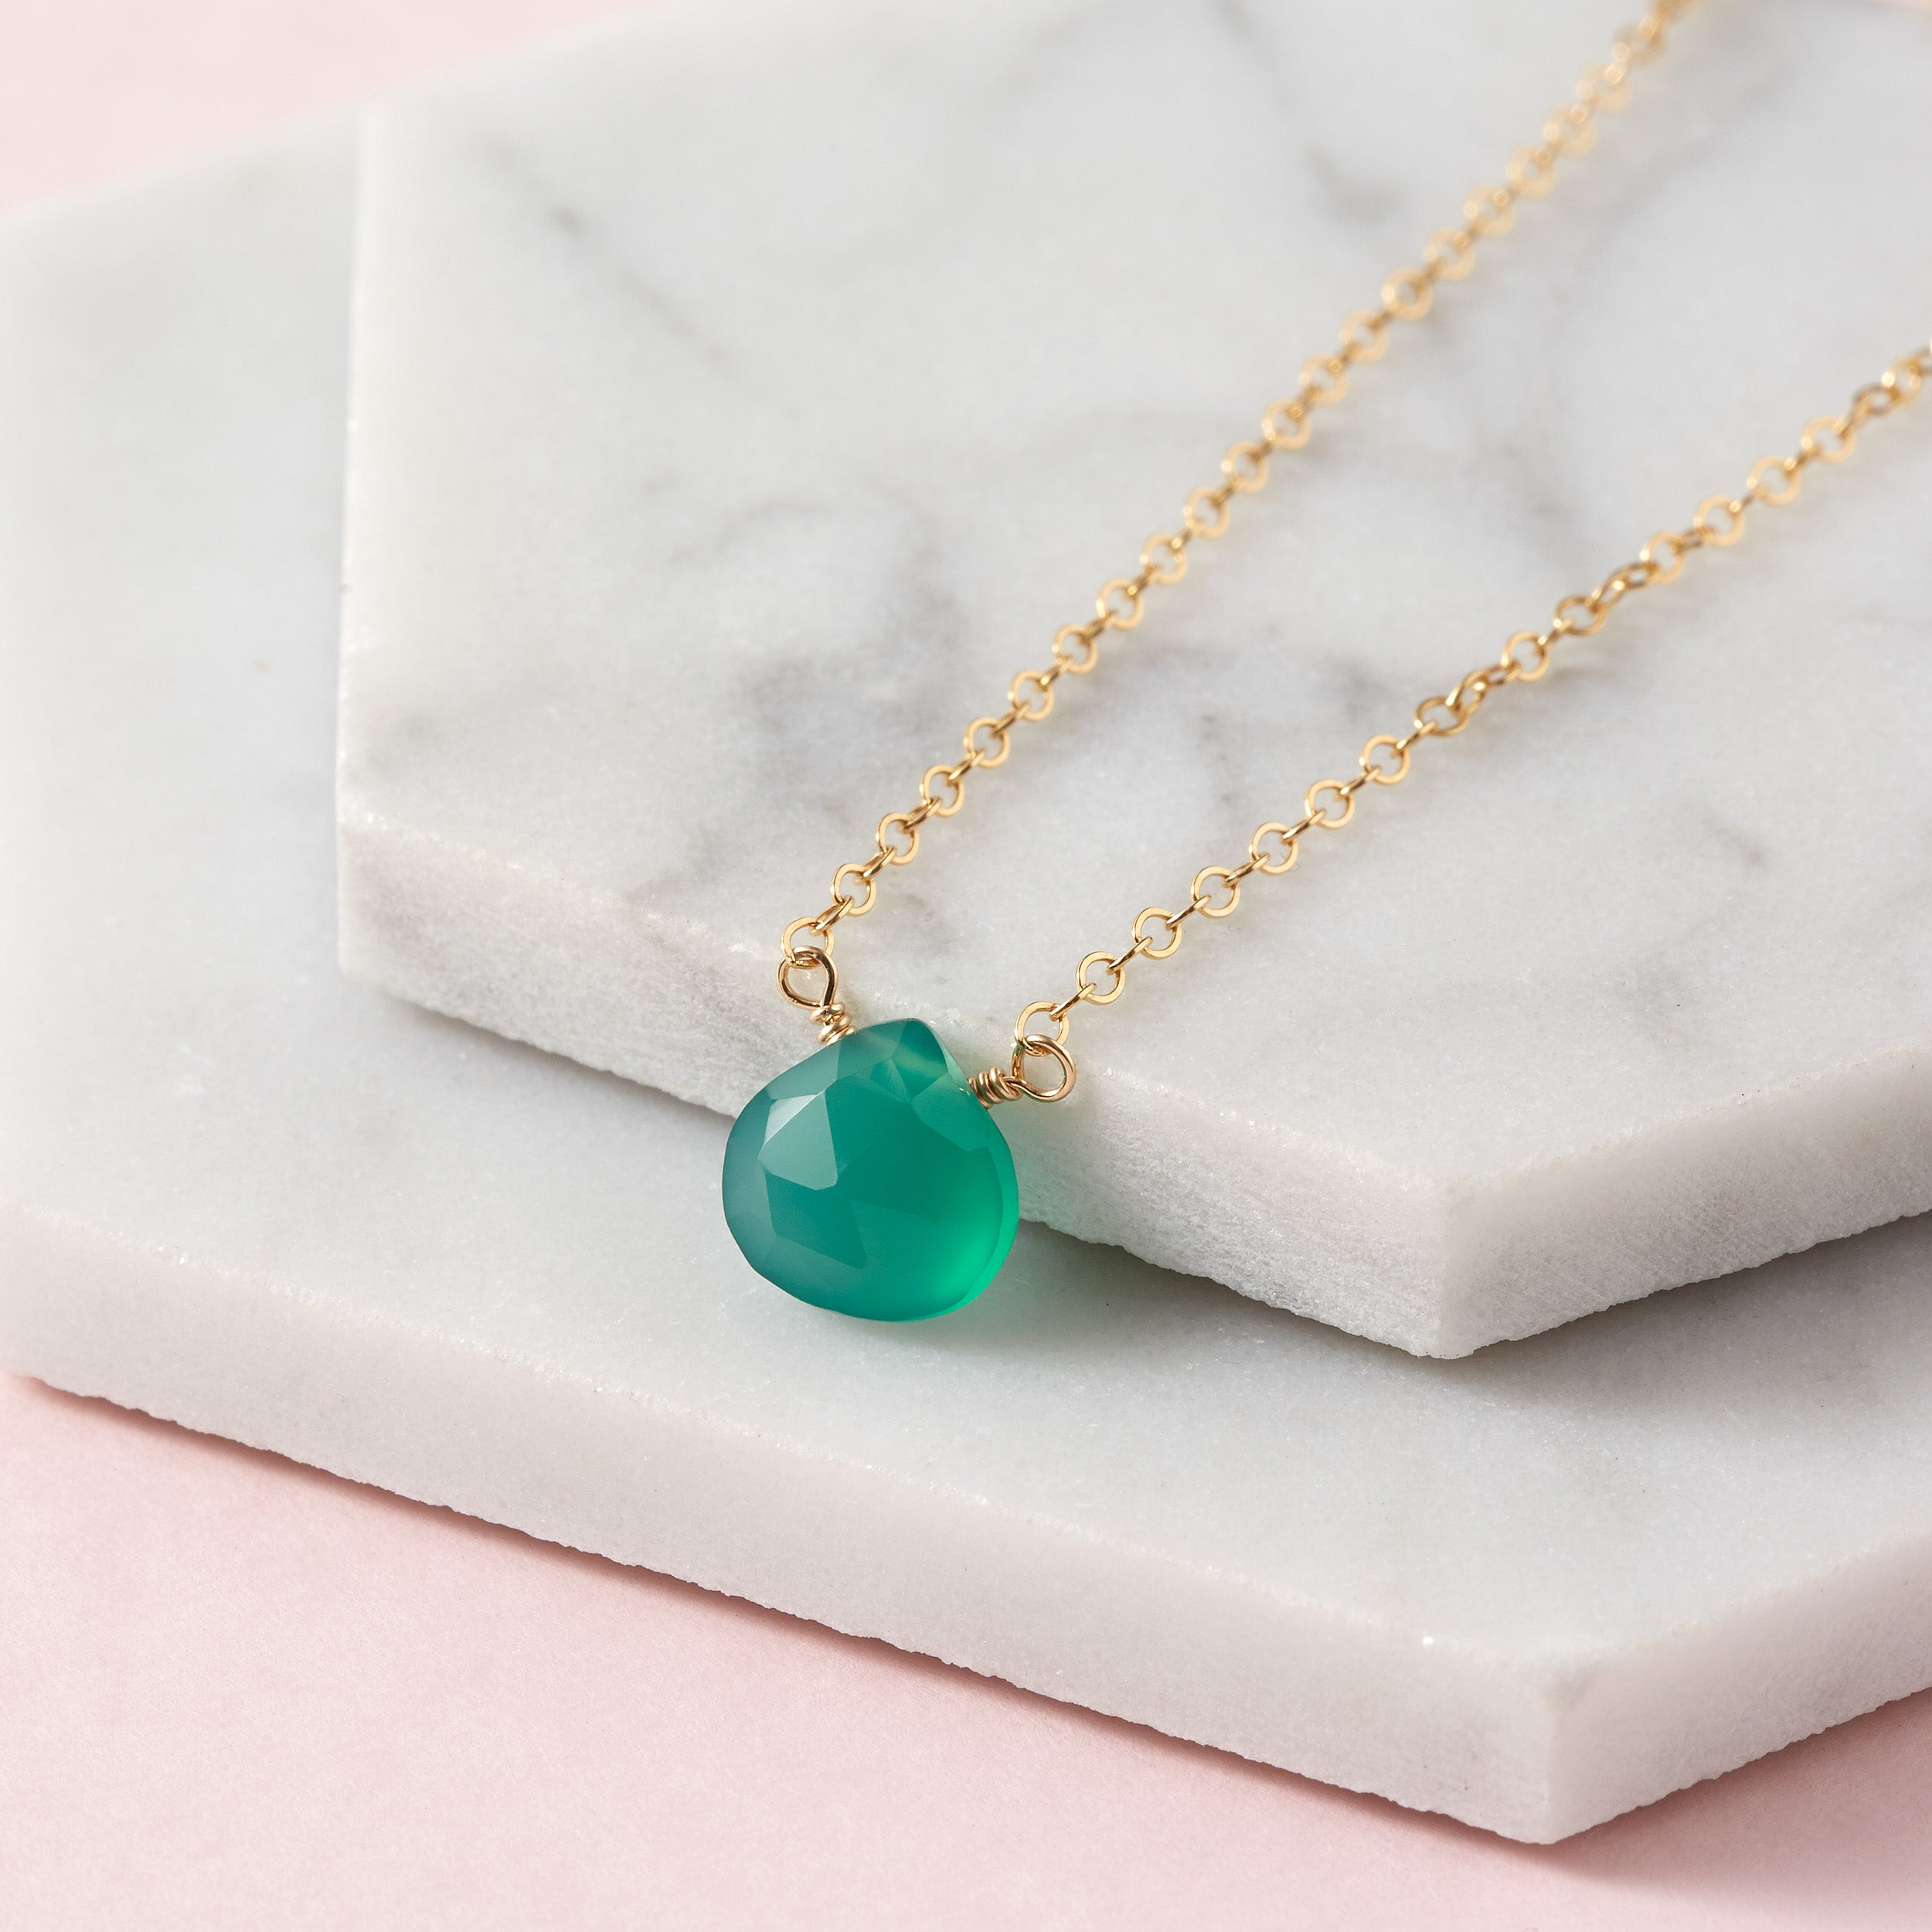 turquoise garnet iolite copper one kind product green blue amethyst necklace in onyx chrome tourmaline chain starstruck dummy sterling pendant of a african larimar silver and